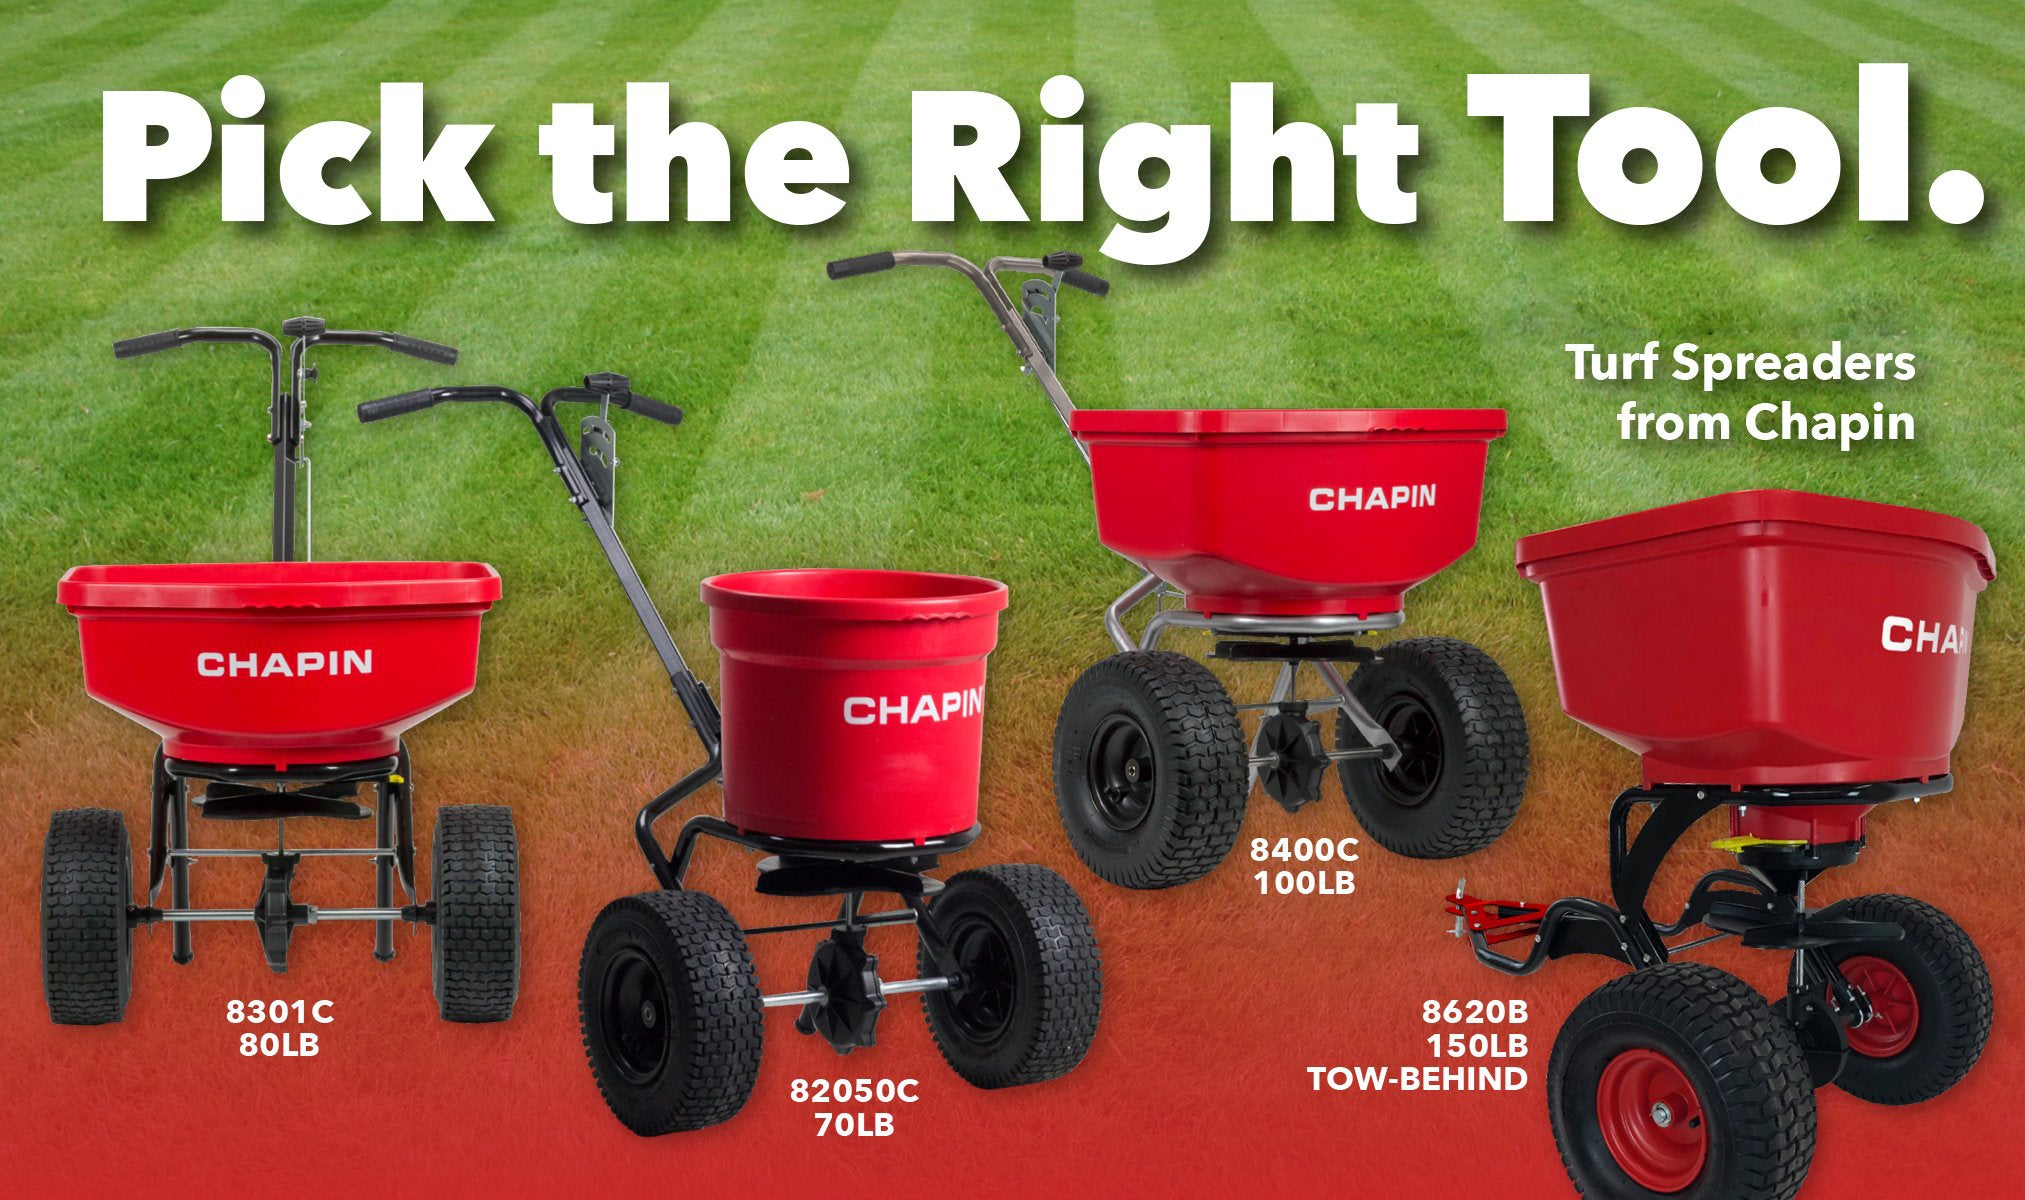 Pick the right too - turf spreaders from Chapin